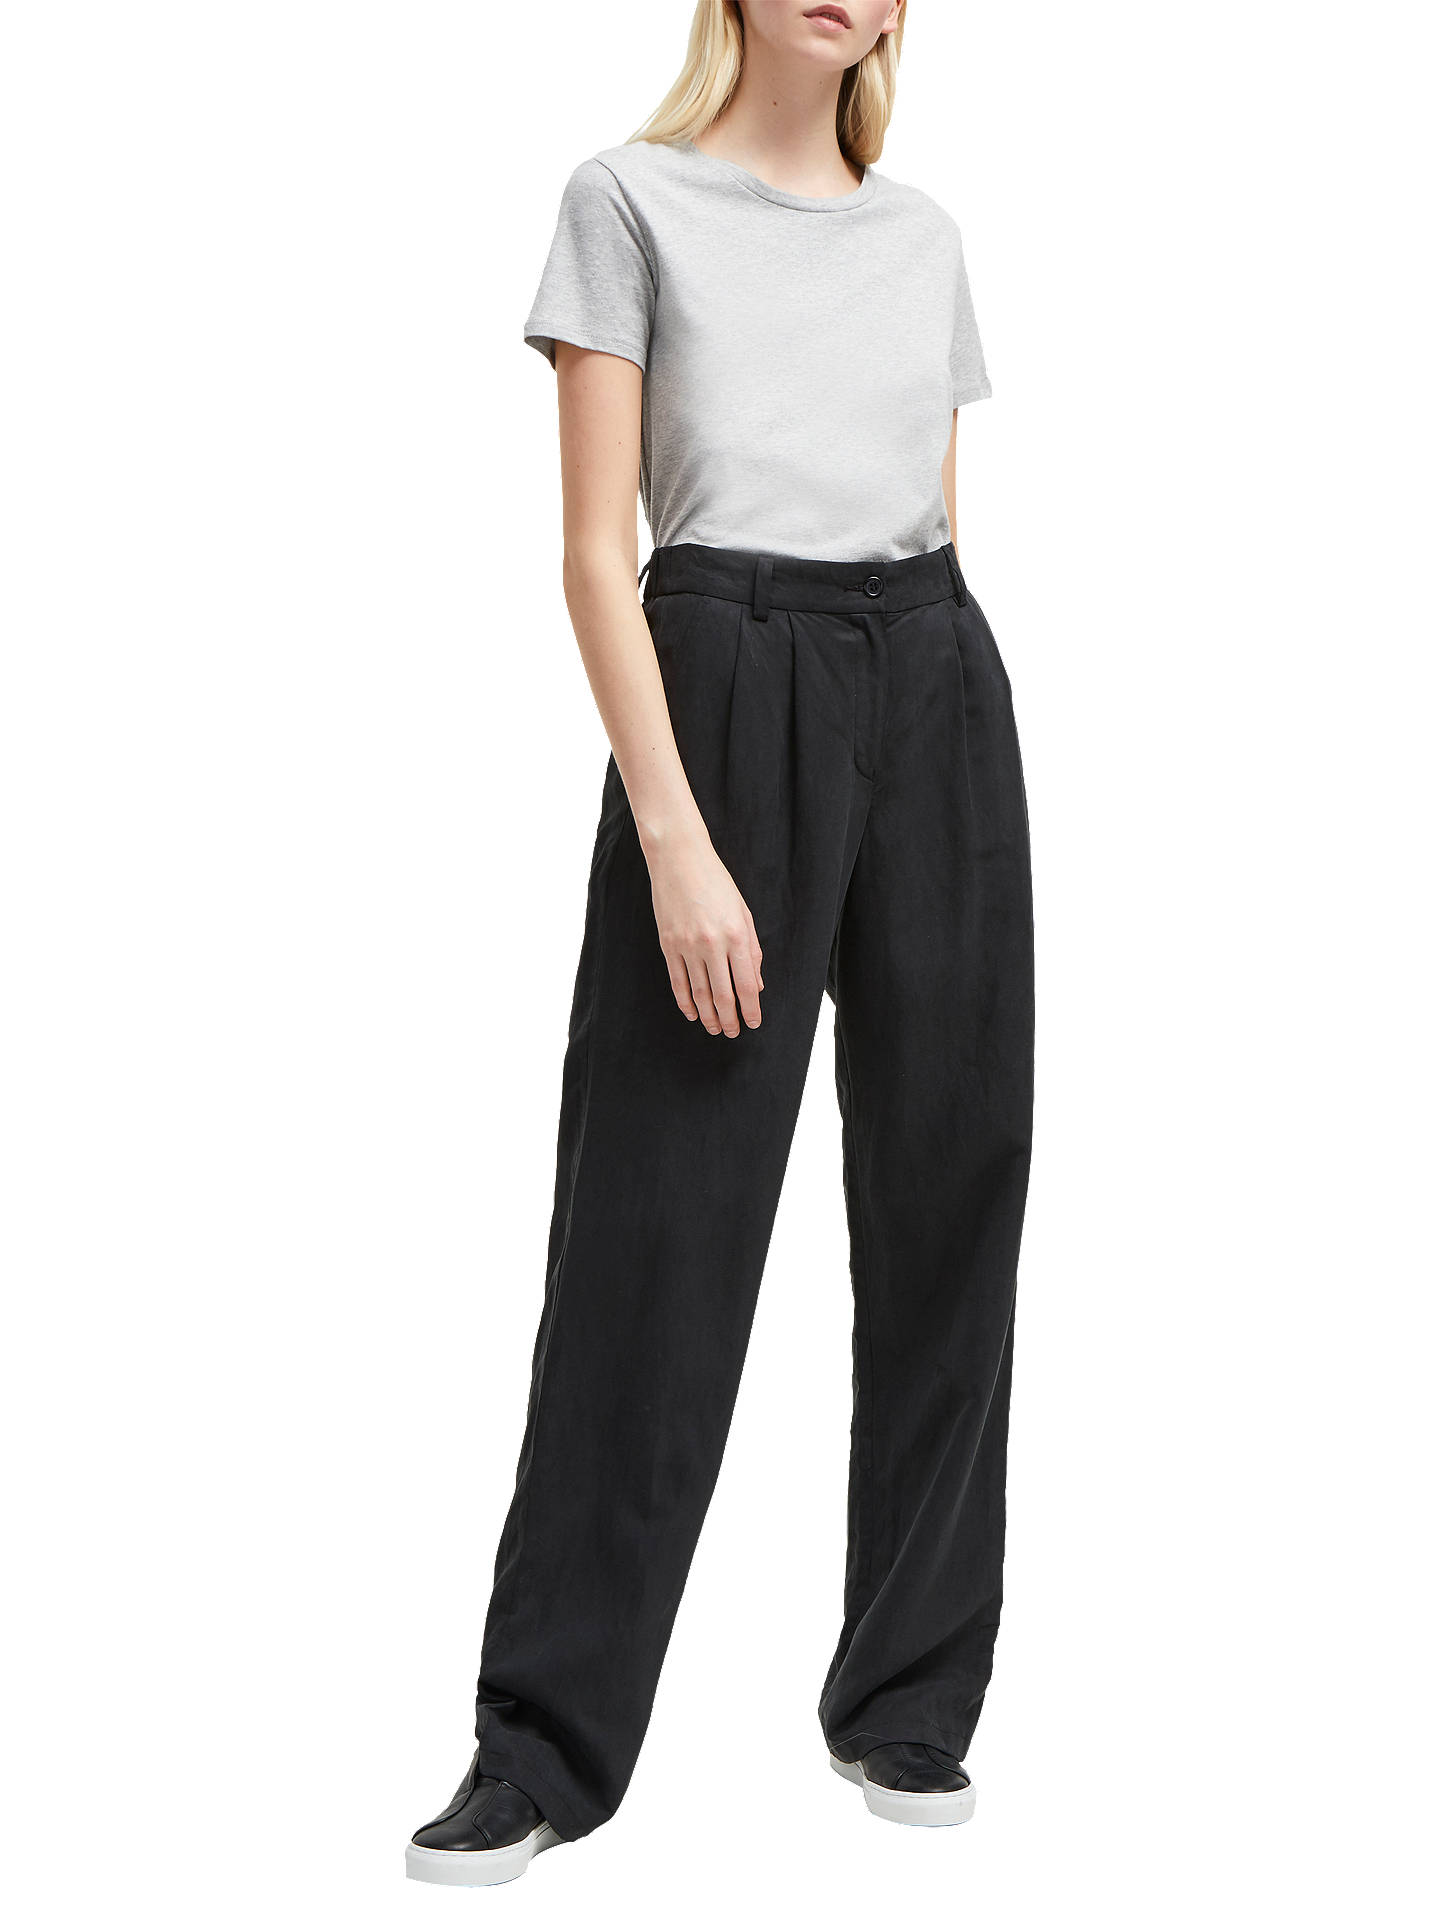 540e930f62d Buy French Connection Caspia Trousers, Black, 6 Online at johnlewis.com ...